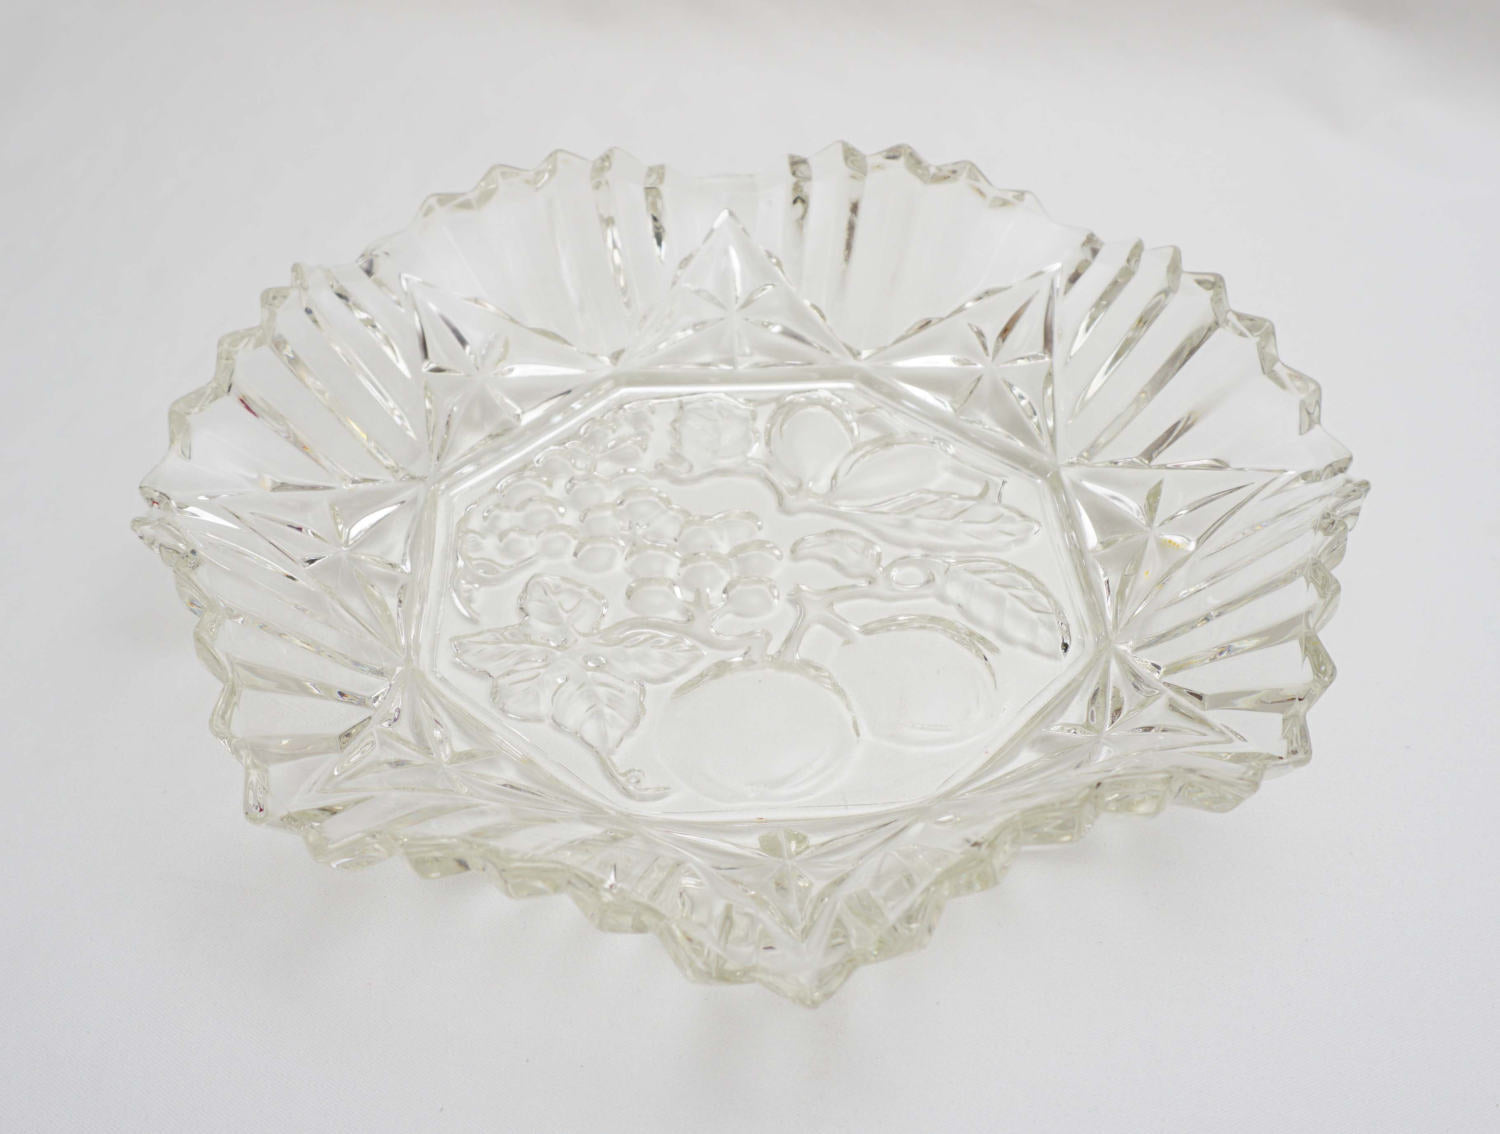 Vintage Pioneer Clear by Federal Glass Large 14 Inch Crimped Edge Round Serving Bowl